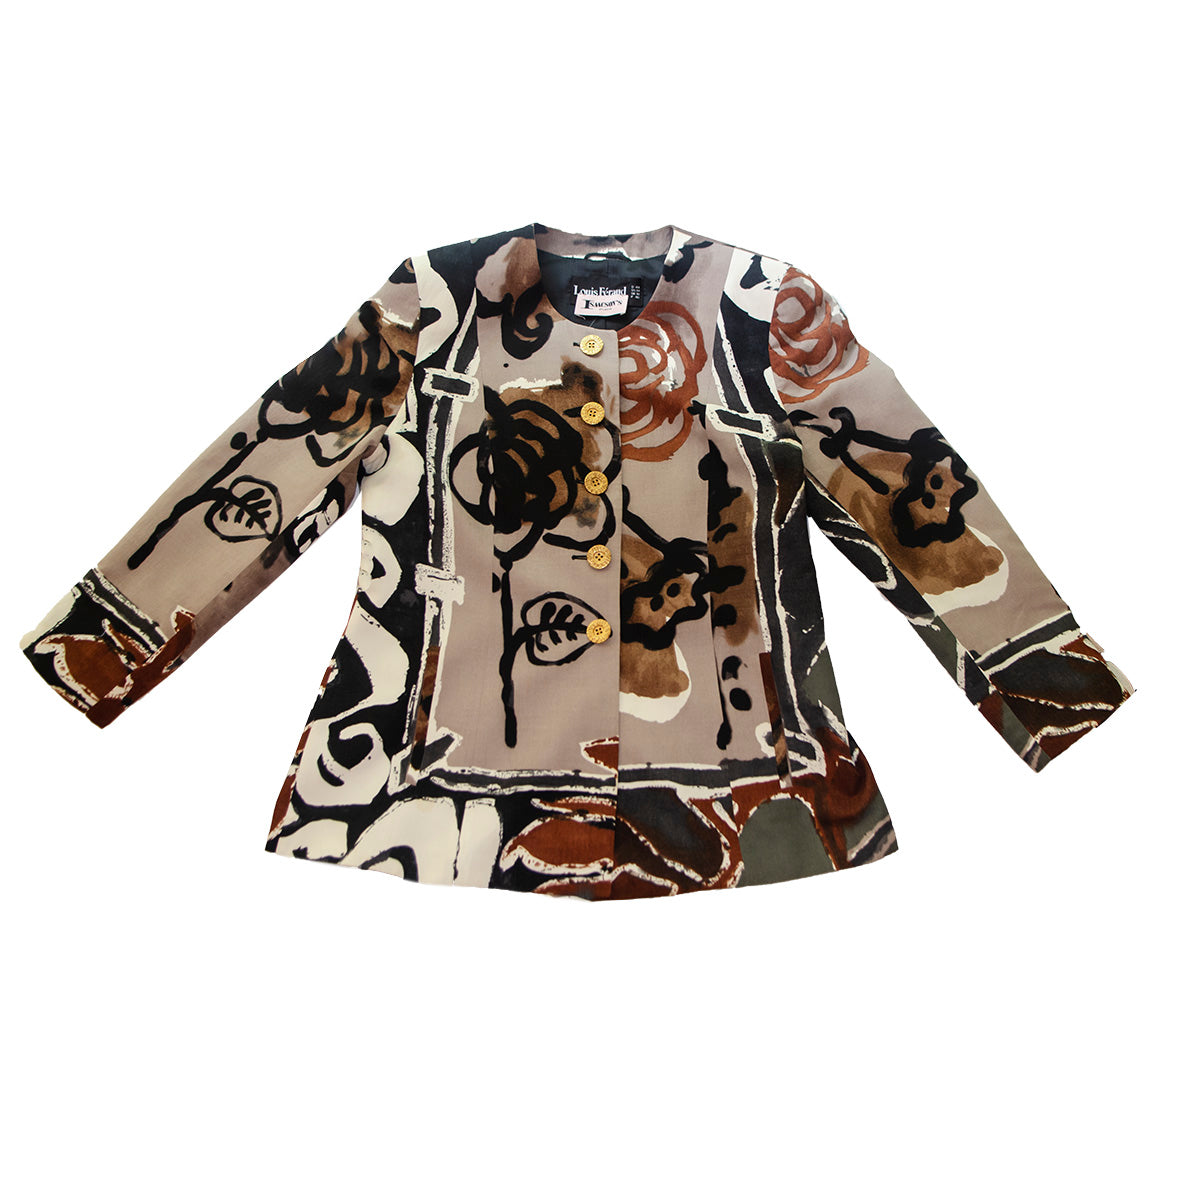 Louis Feraud Blazer, Abstract Print, Gold Buttons, Size 14